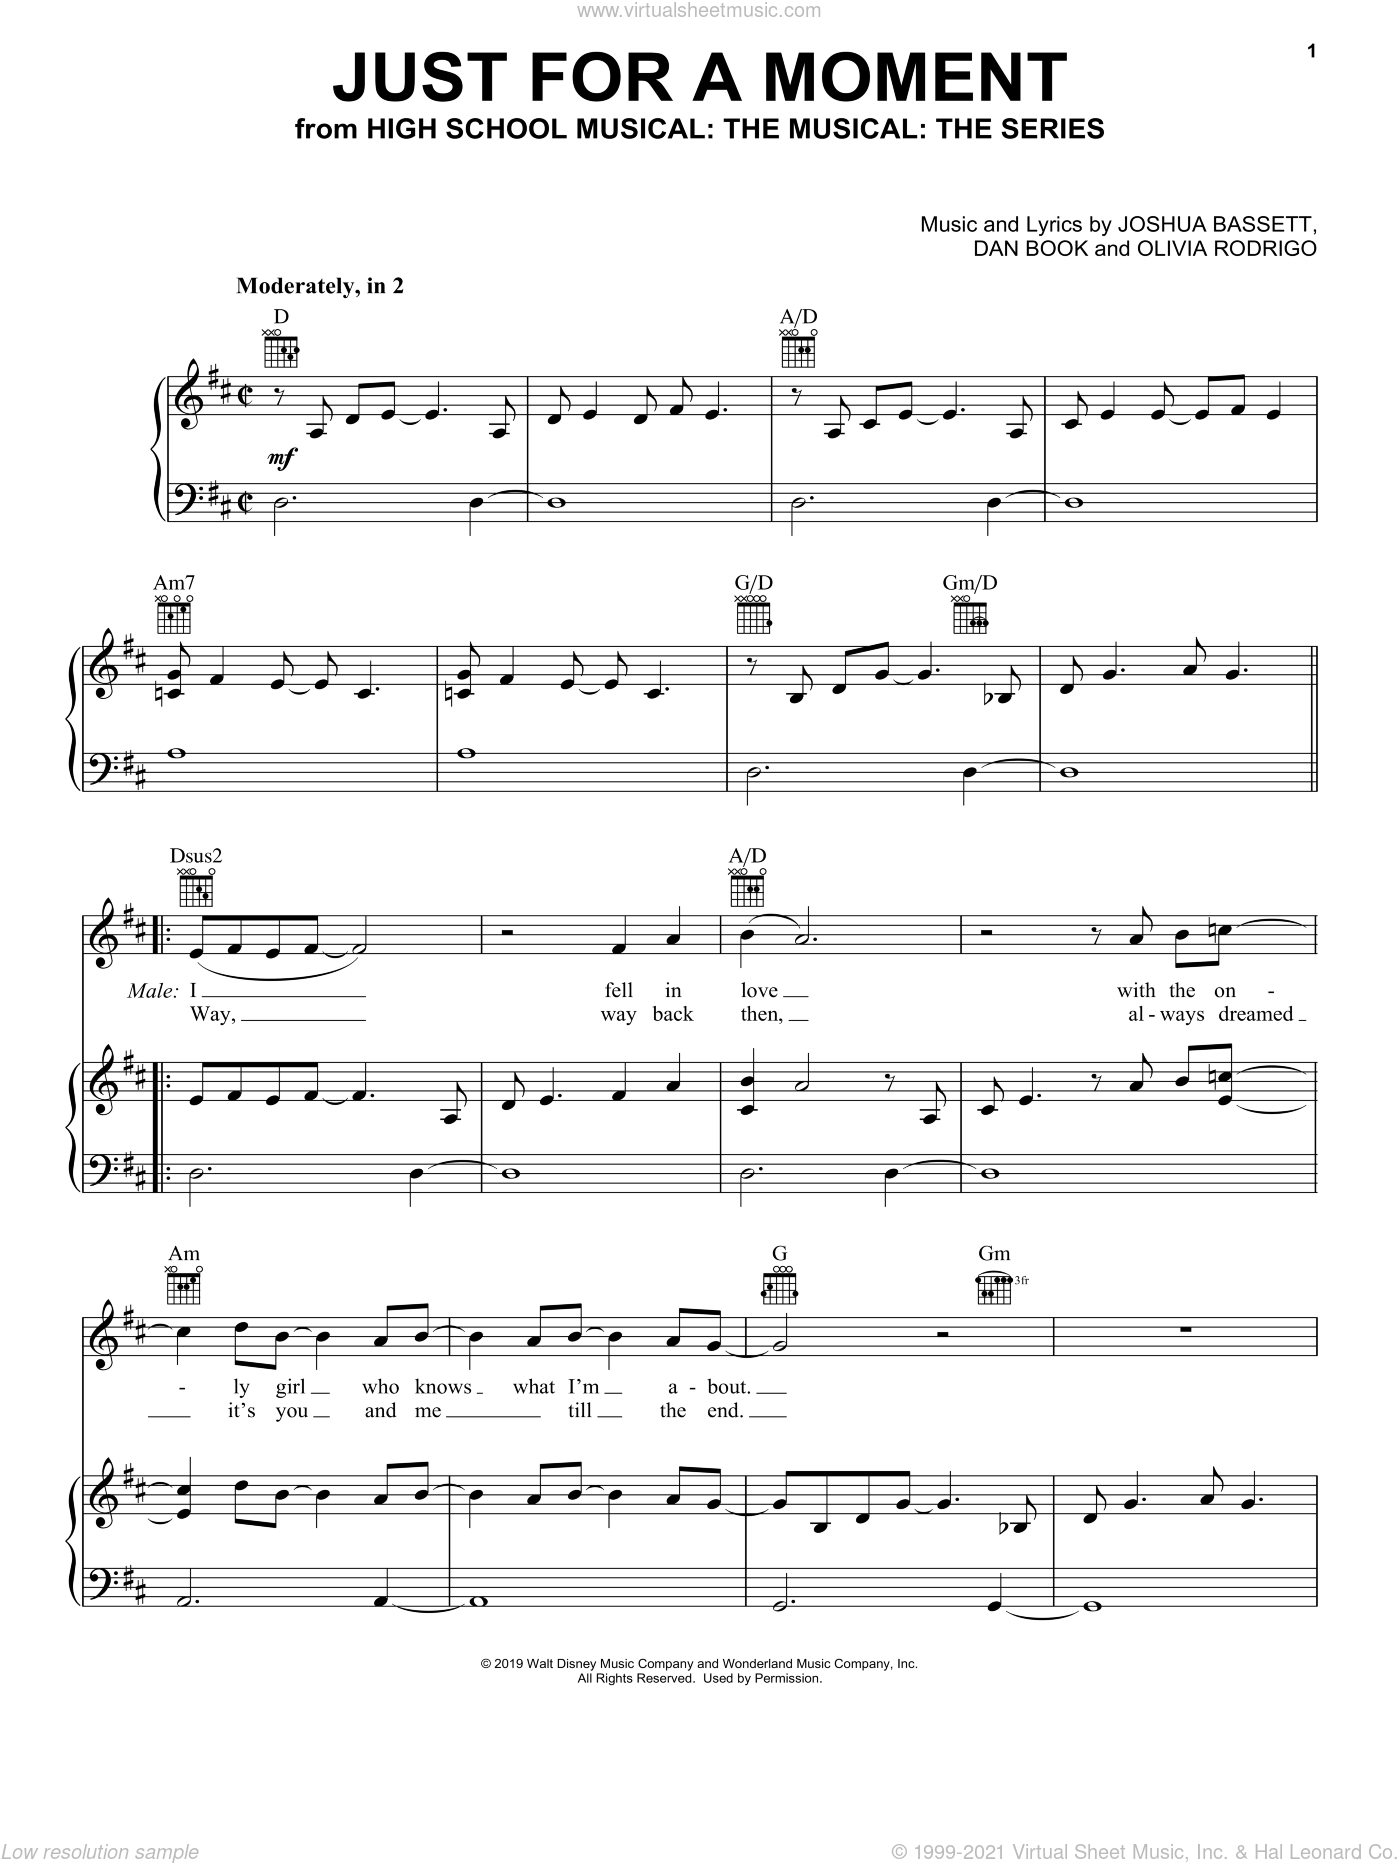 Just For A Moment (from High School Musical: The Musical: The Series) sheet music for voice, piano or guitar by Olivia Rodrigo & Joshua Bassett, Dan Book, Joshua Bassett and Olivia Rodrigo, intermediate skill level